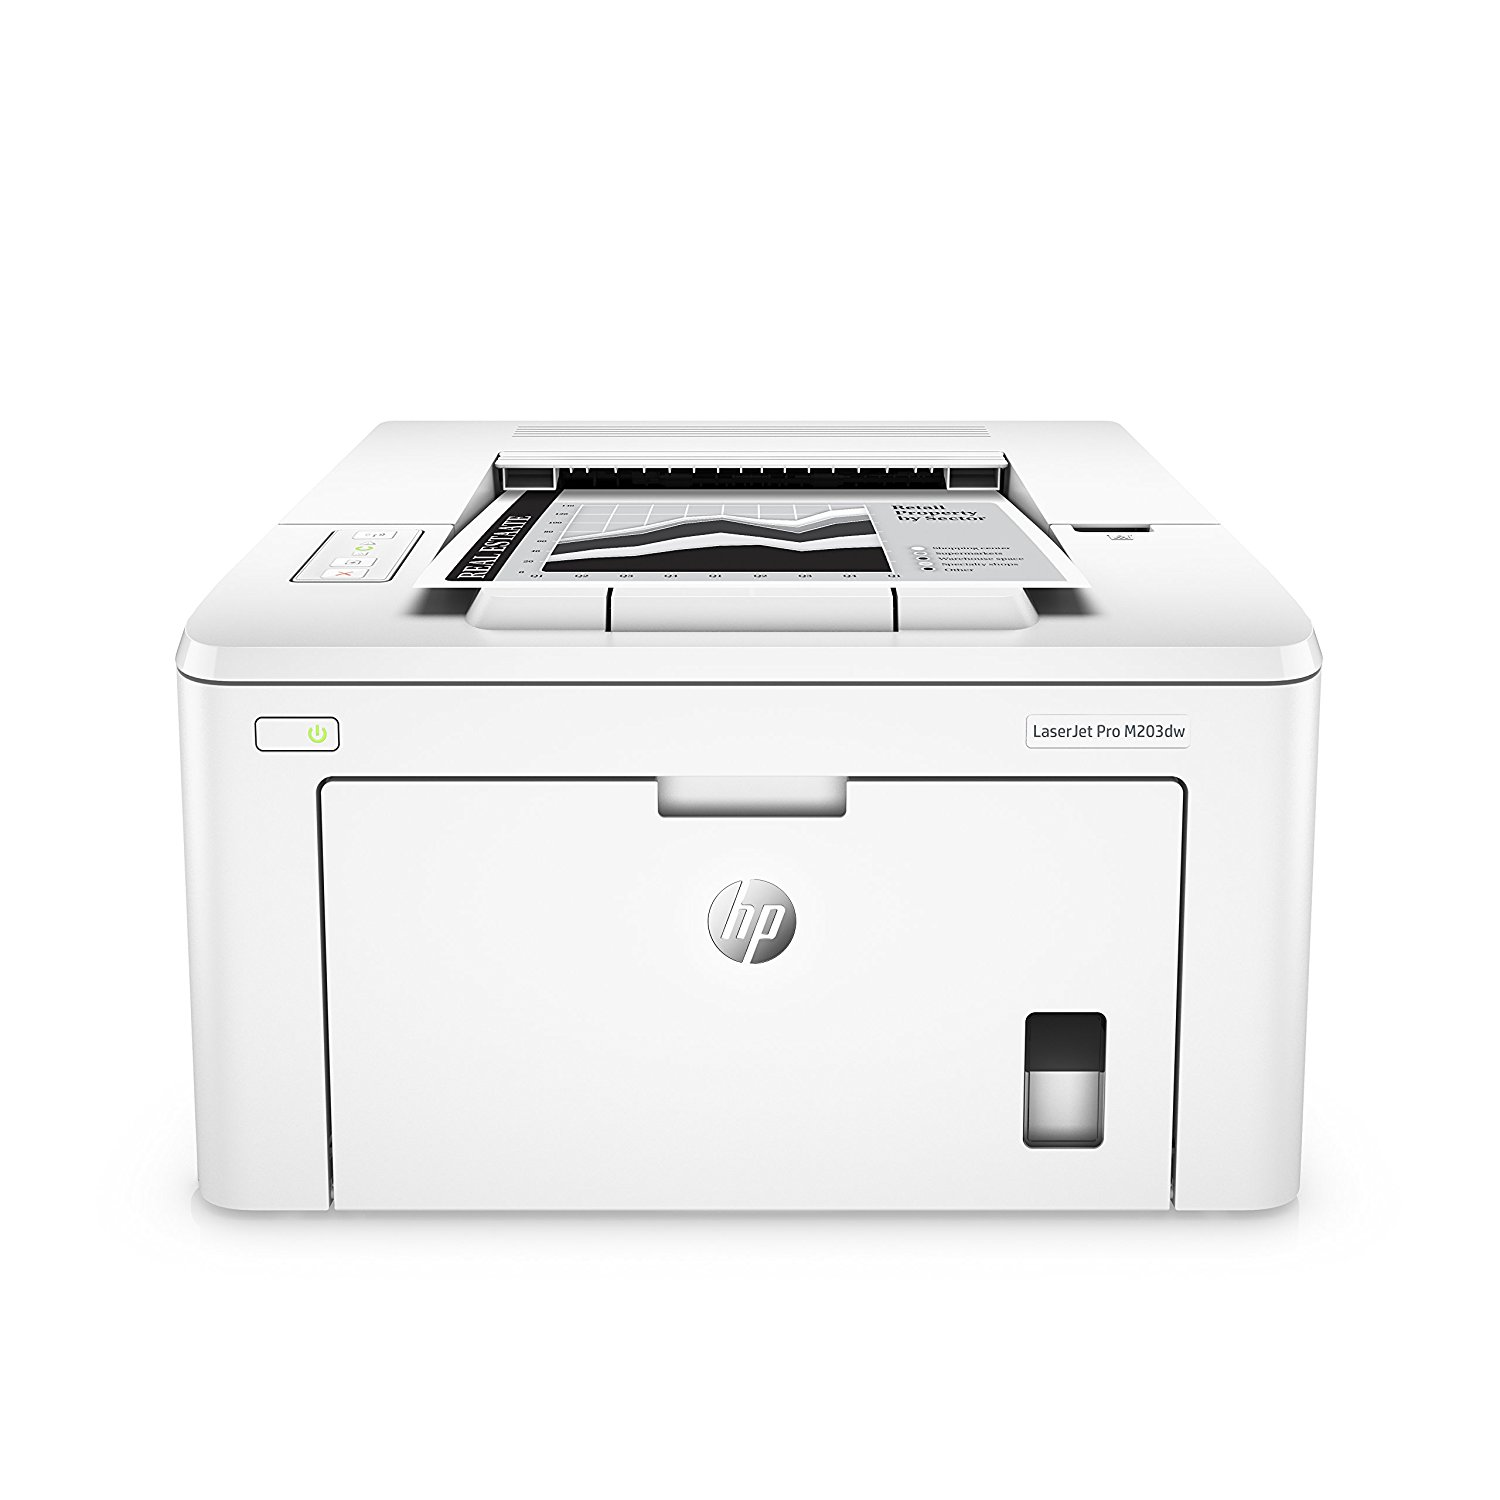 HP G3Q47A#B19 M203dw LaserJet Pro Printer